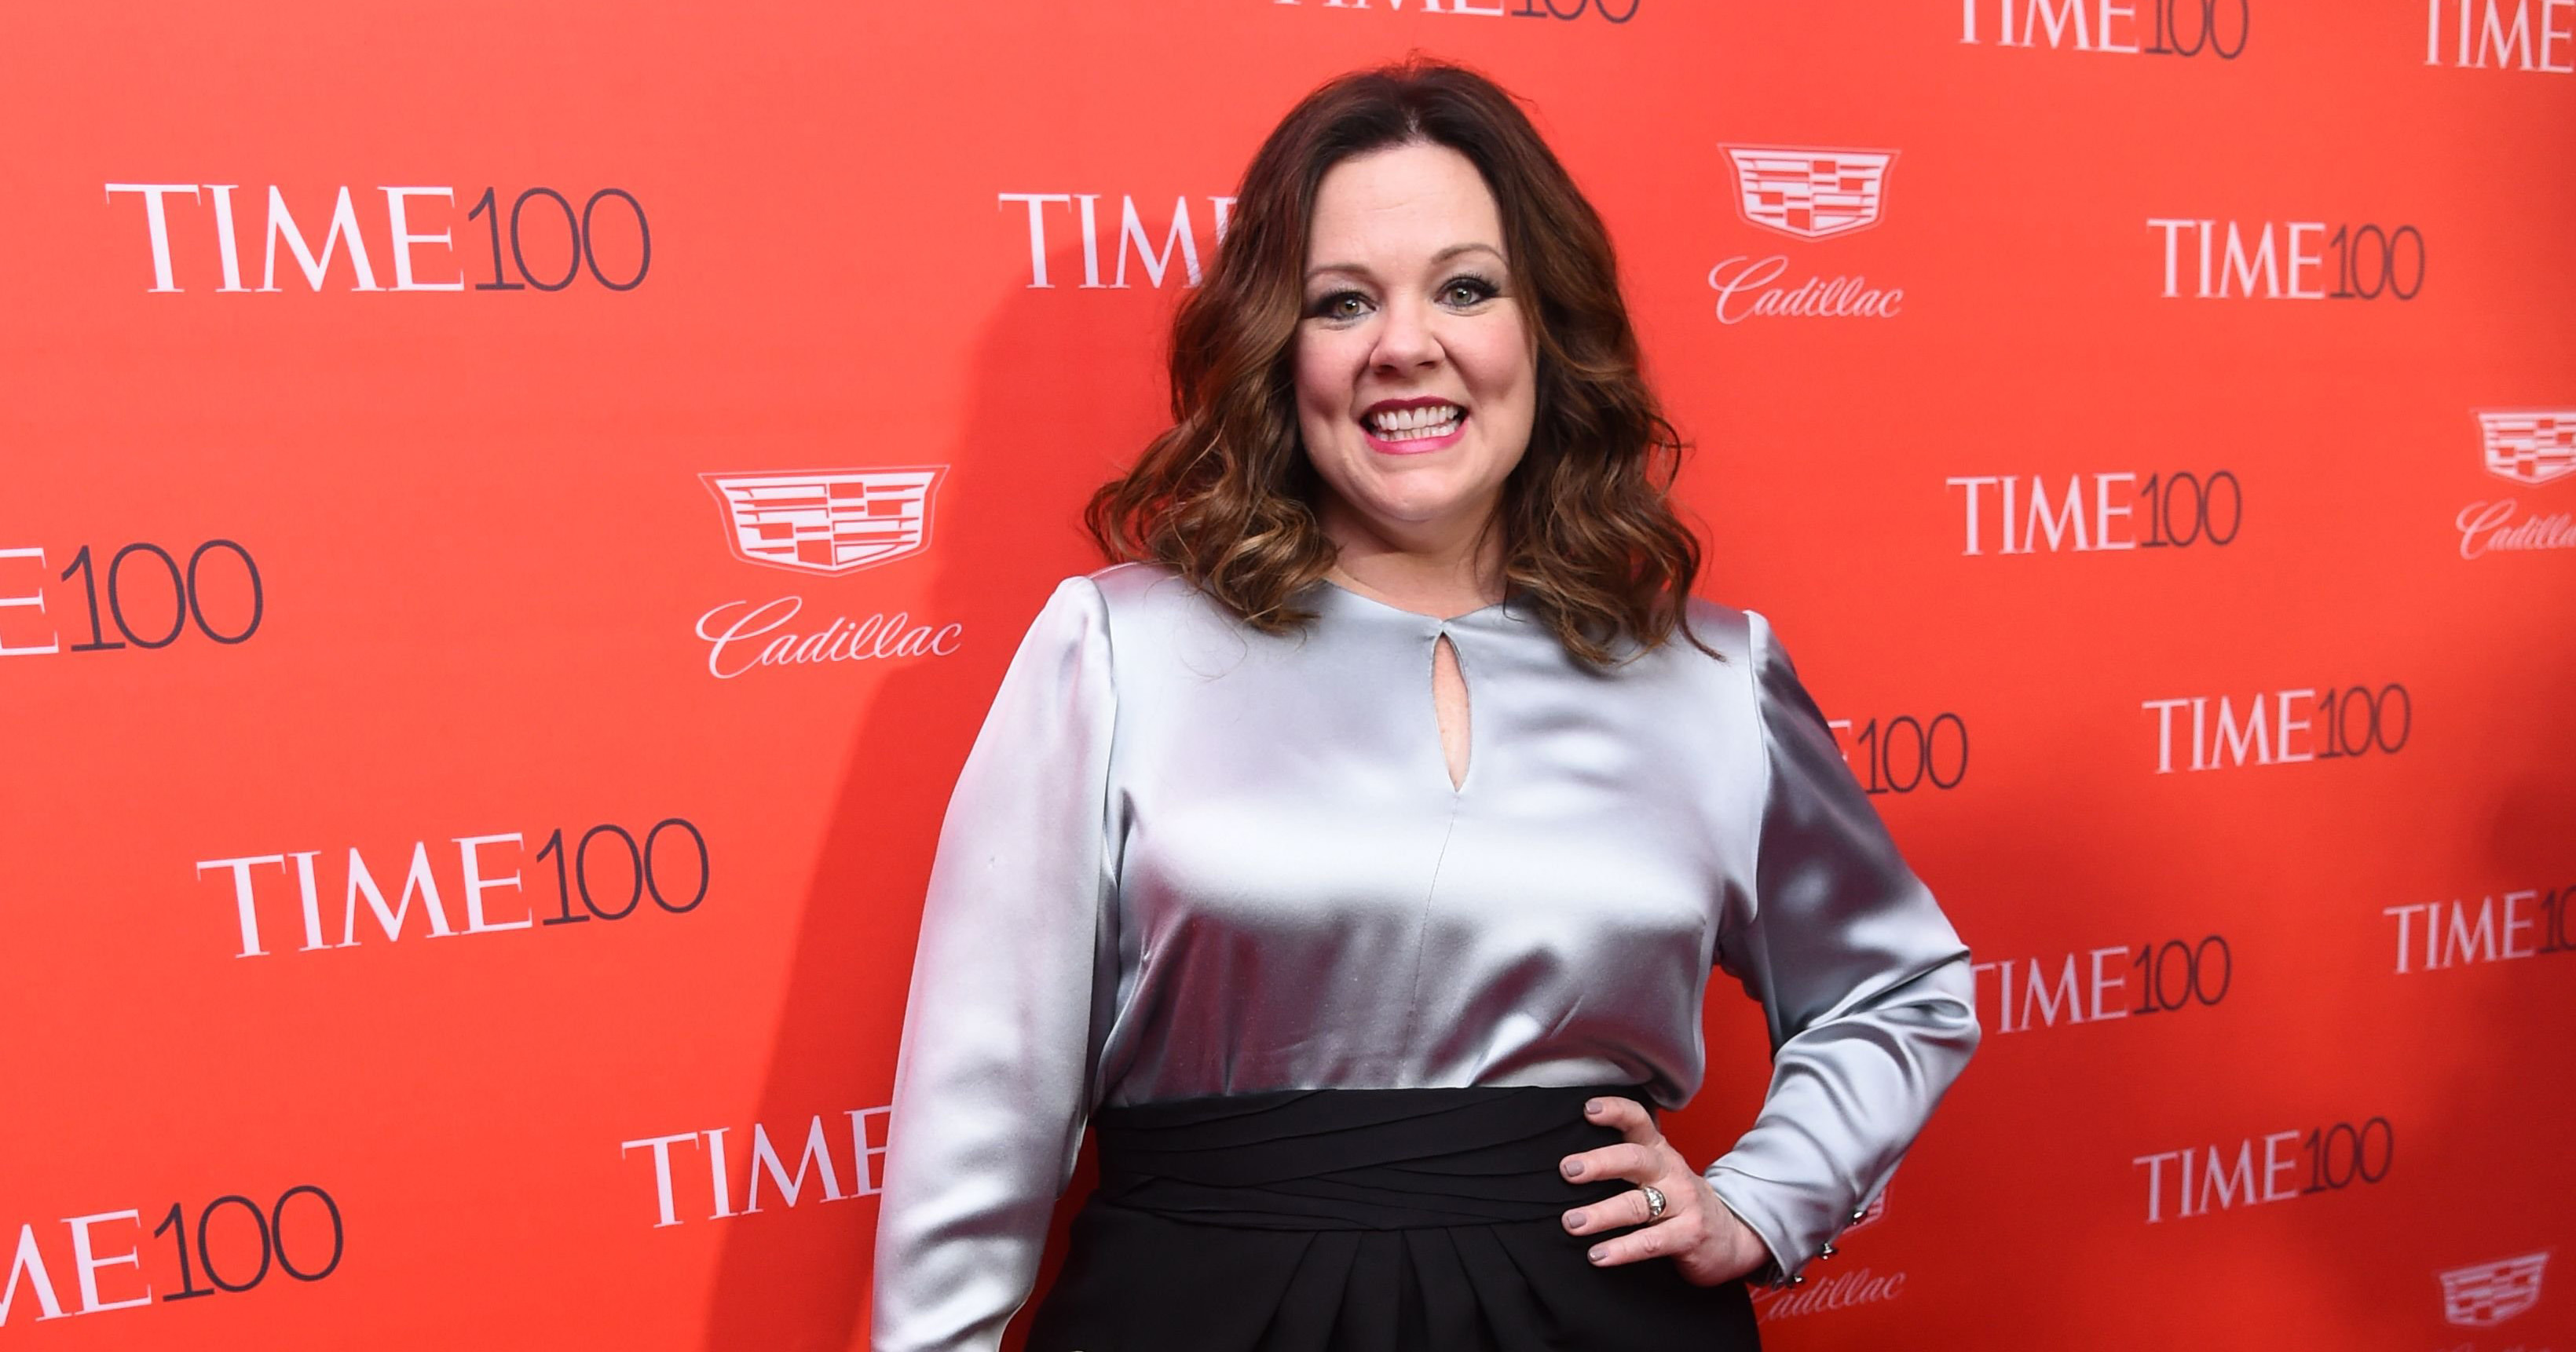 Melissa McCarthy at the TIME 100 gala in New York on April 26, 2016.